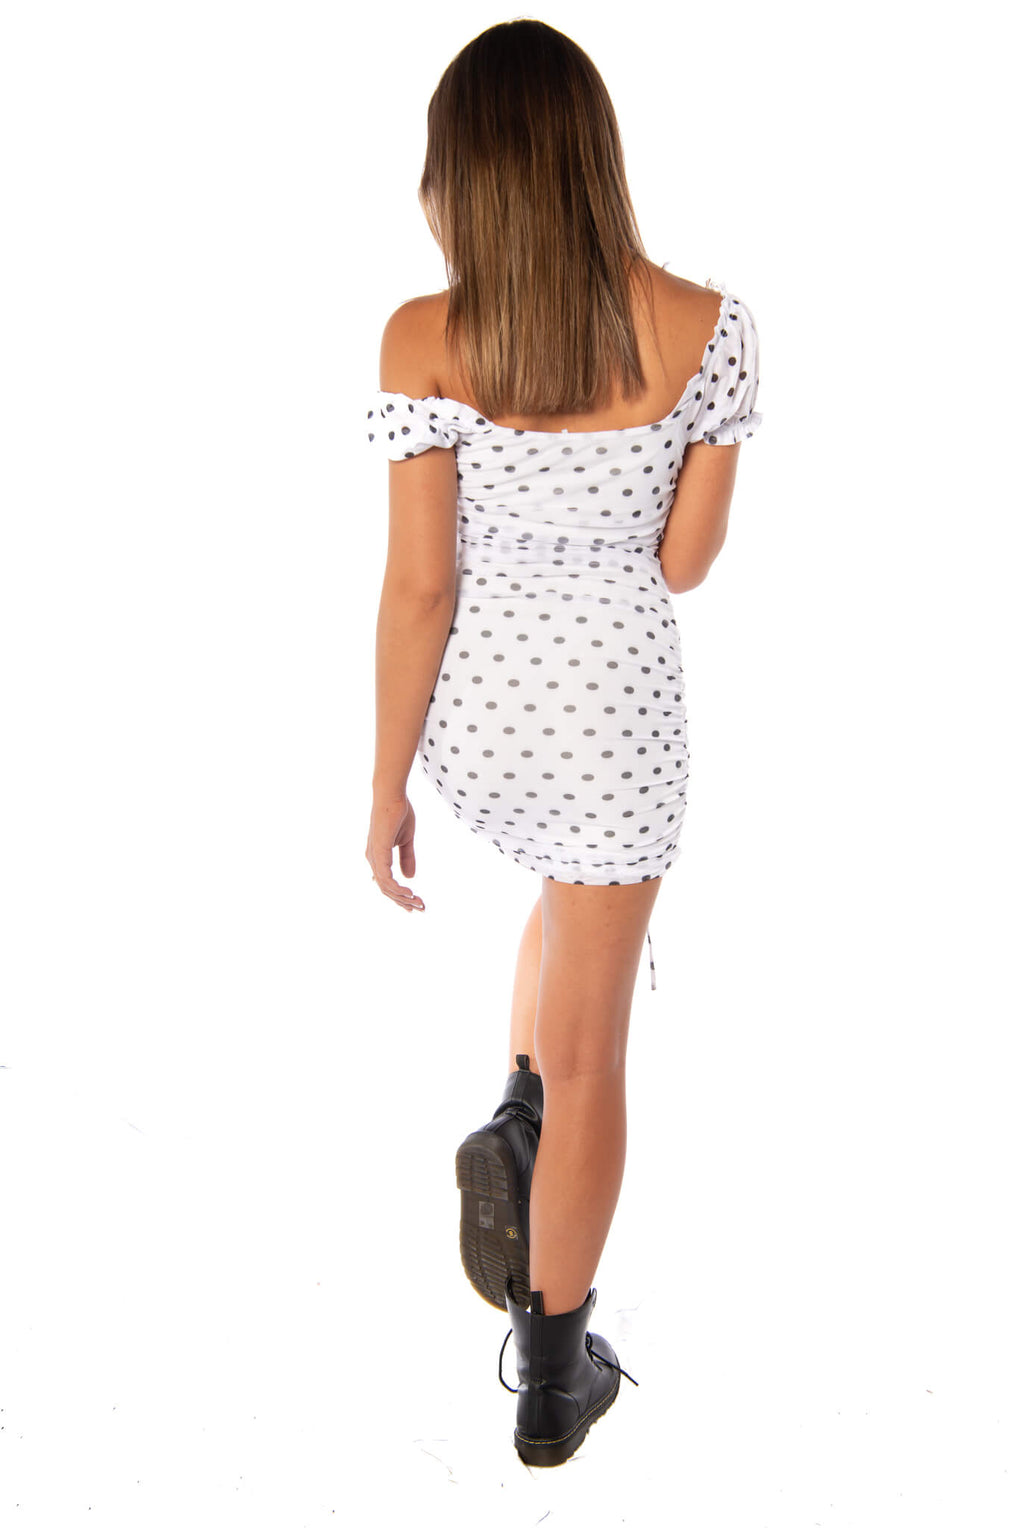 RACE DAY DRESS - WHITE